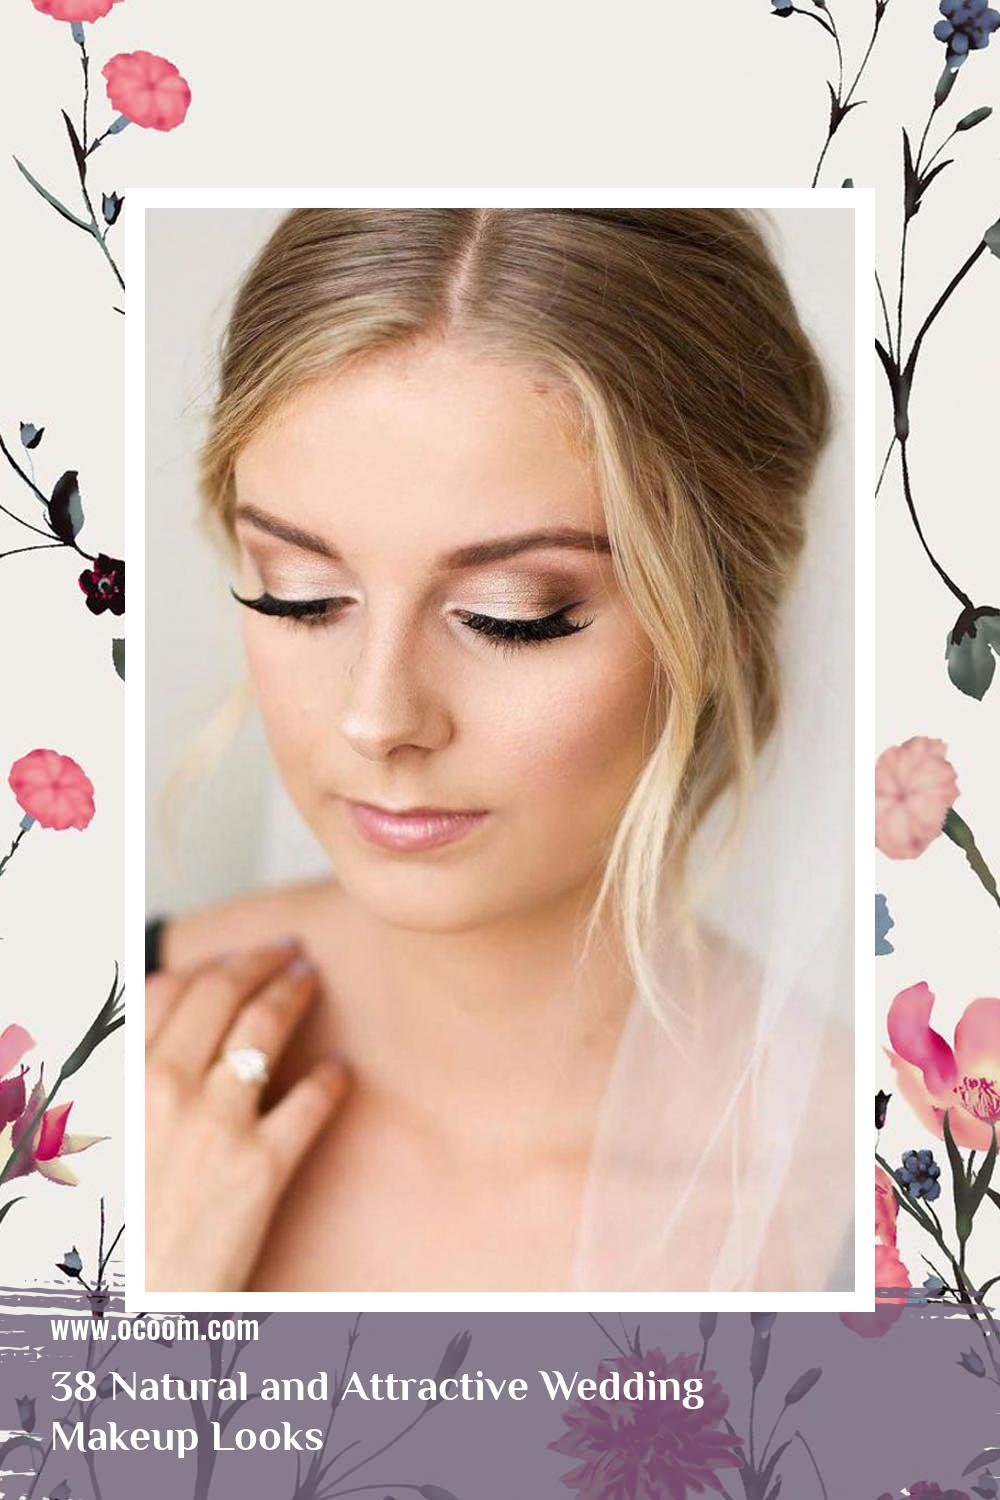 38 Natural and Attractive Wedding Makeup Looks 23